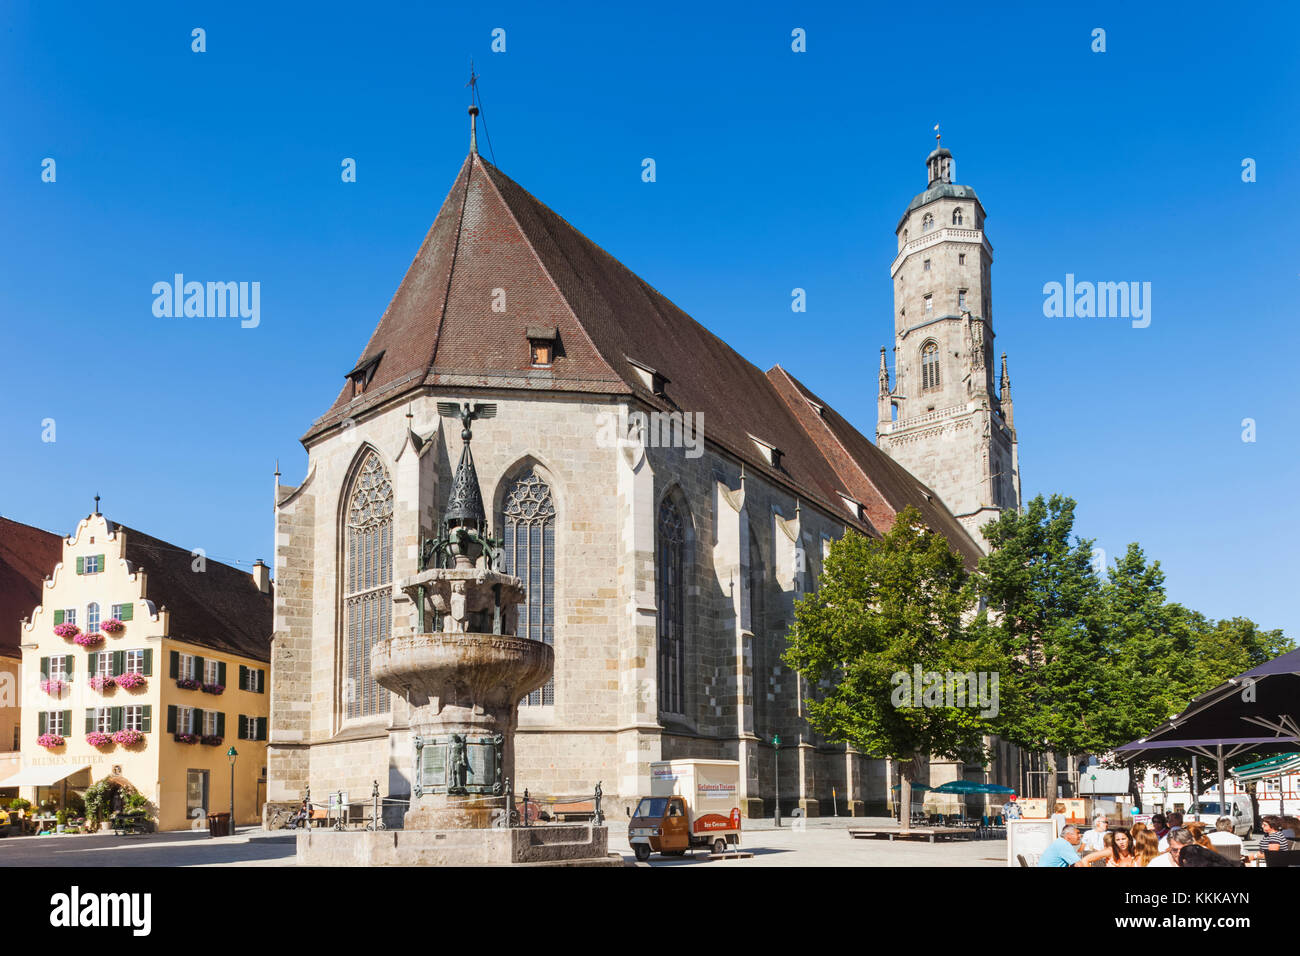 deutschland bayern romantische stra e n rdlingen st george 39 s kirche stockfoto bild. Black Bedroom Furniture Sets. Home Design Ideas